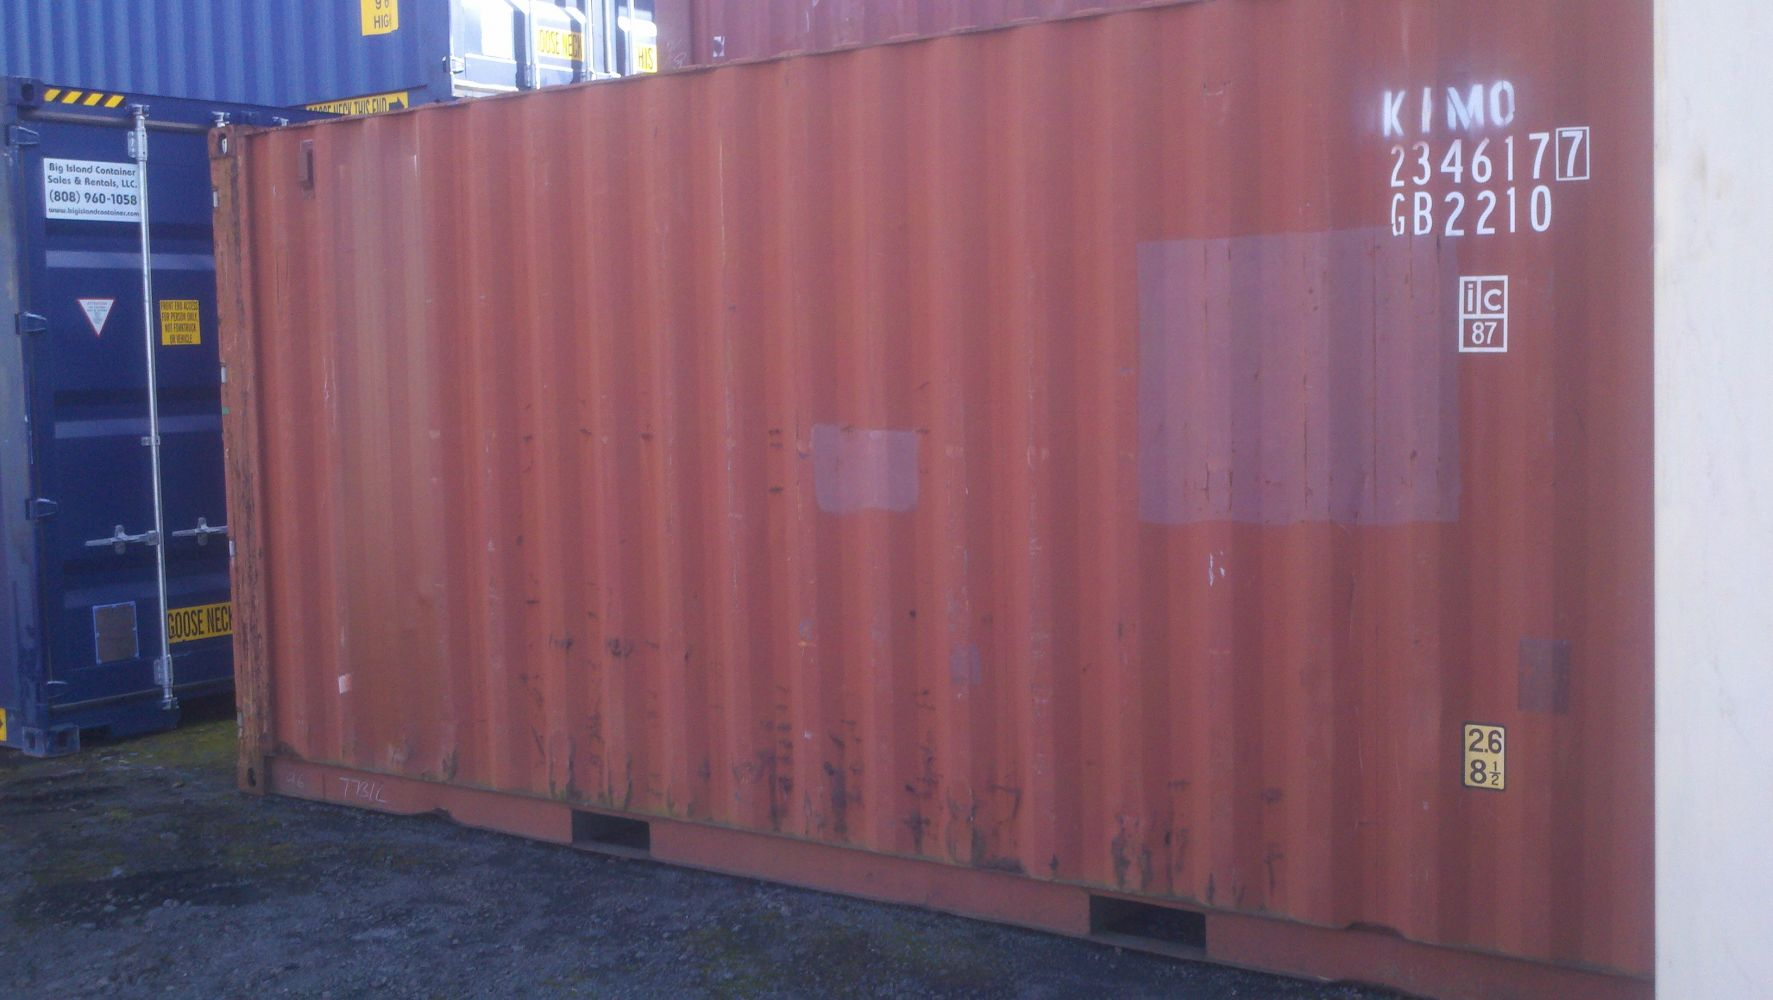 Big Island Container Sales Rental LLC Storage containers Keaau HI